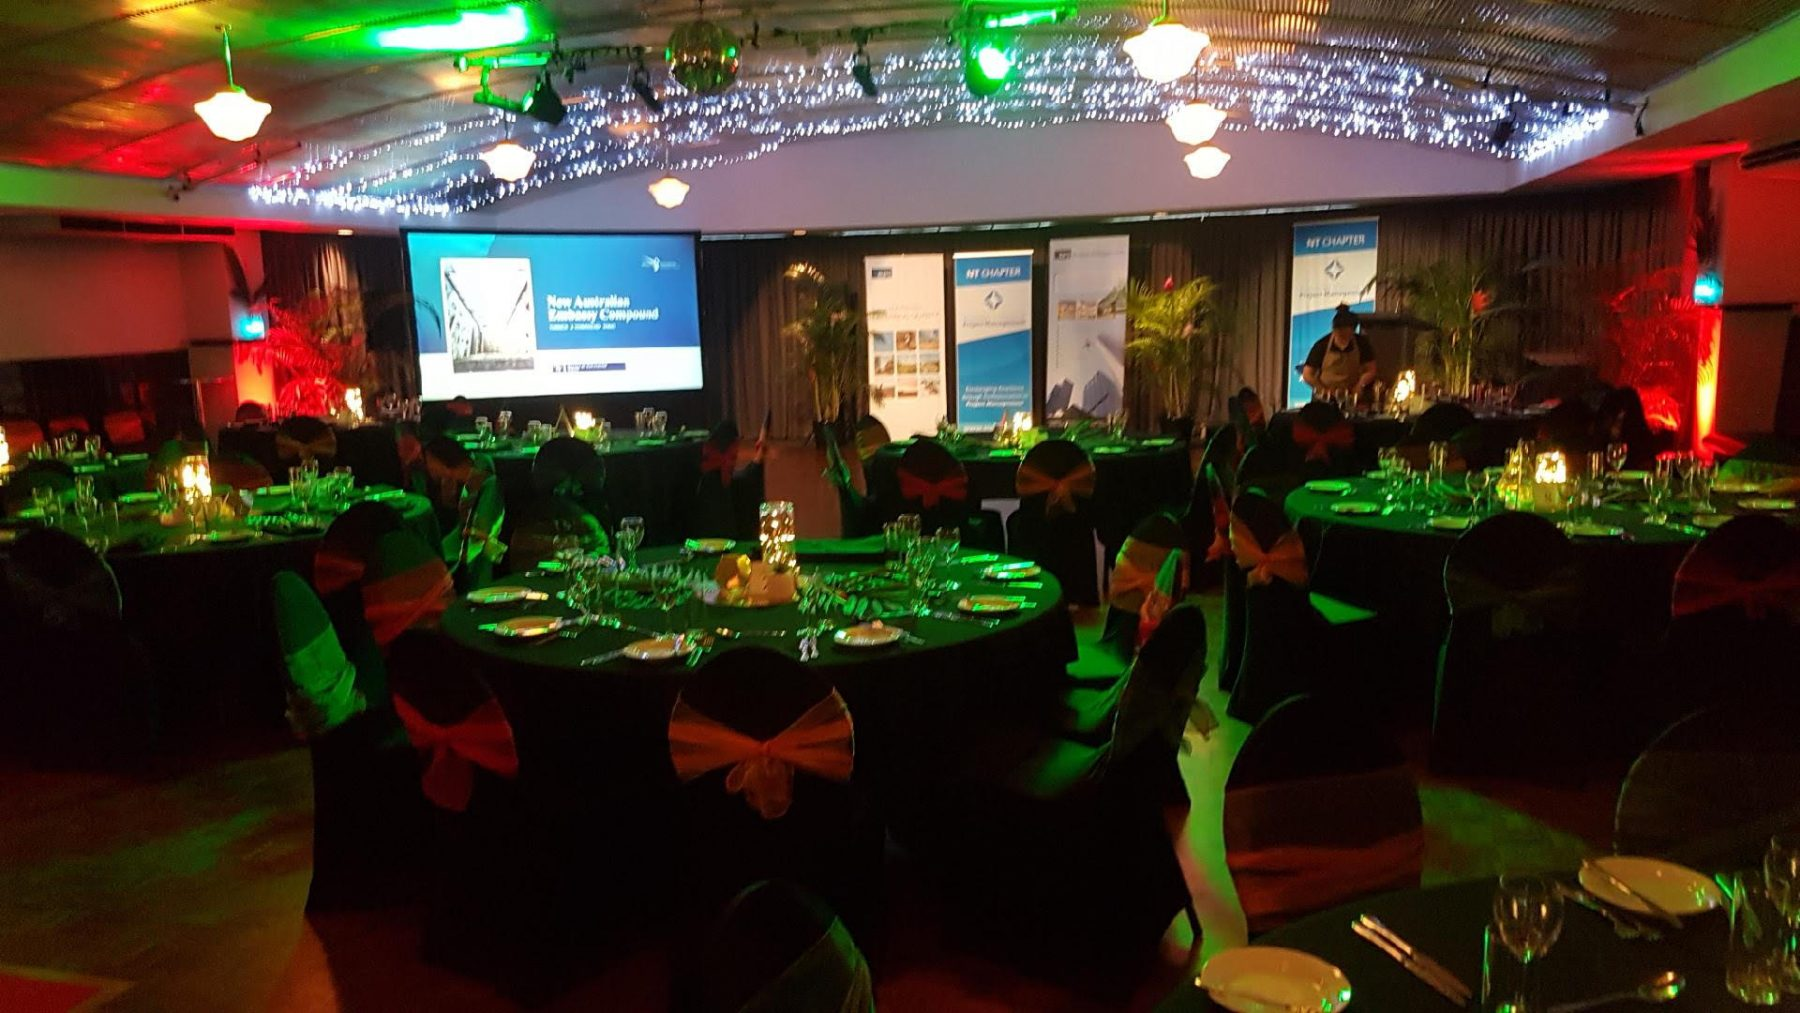 Gala award night; tropical theme; big screen; sponsorship banners; fannie bay